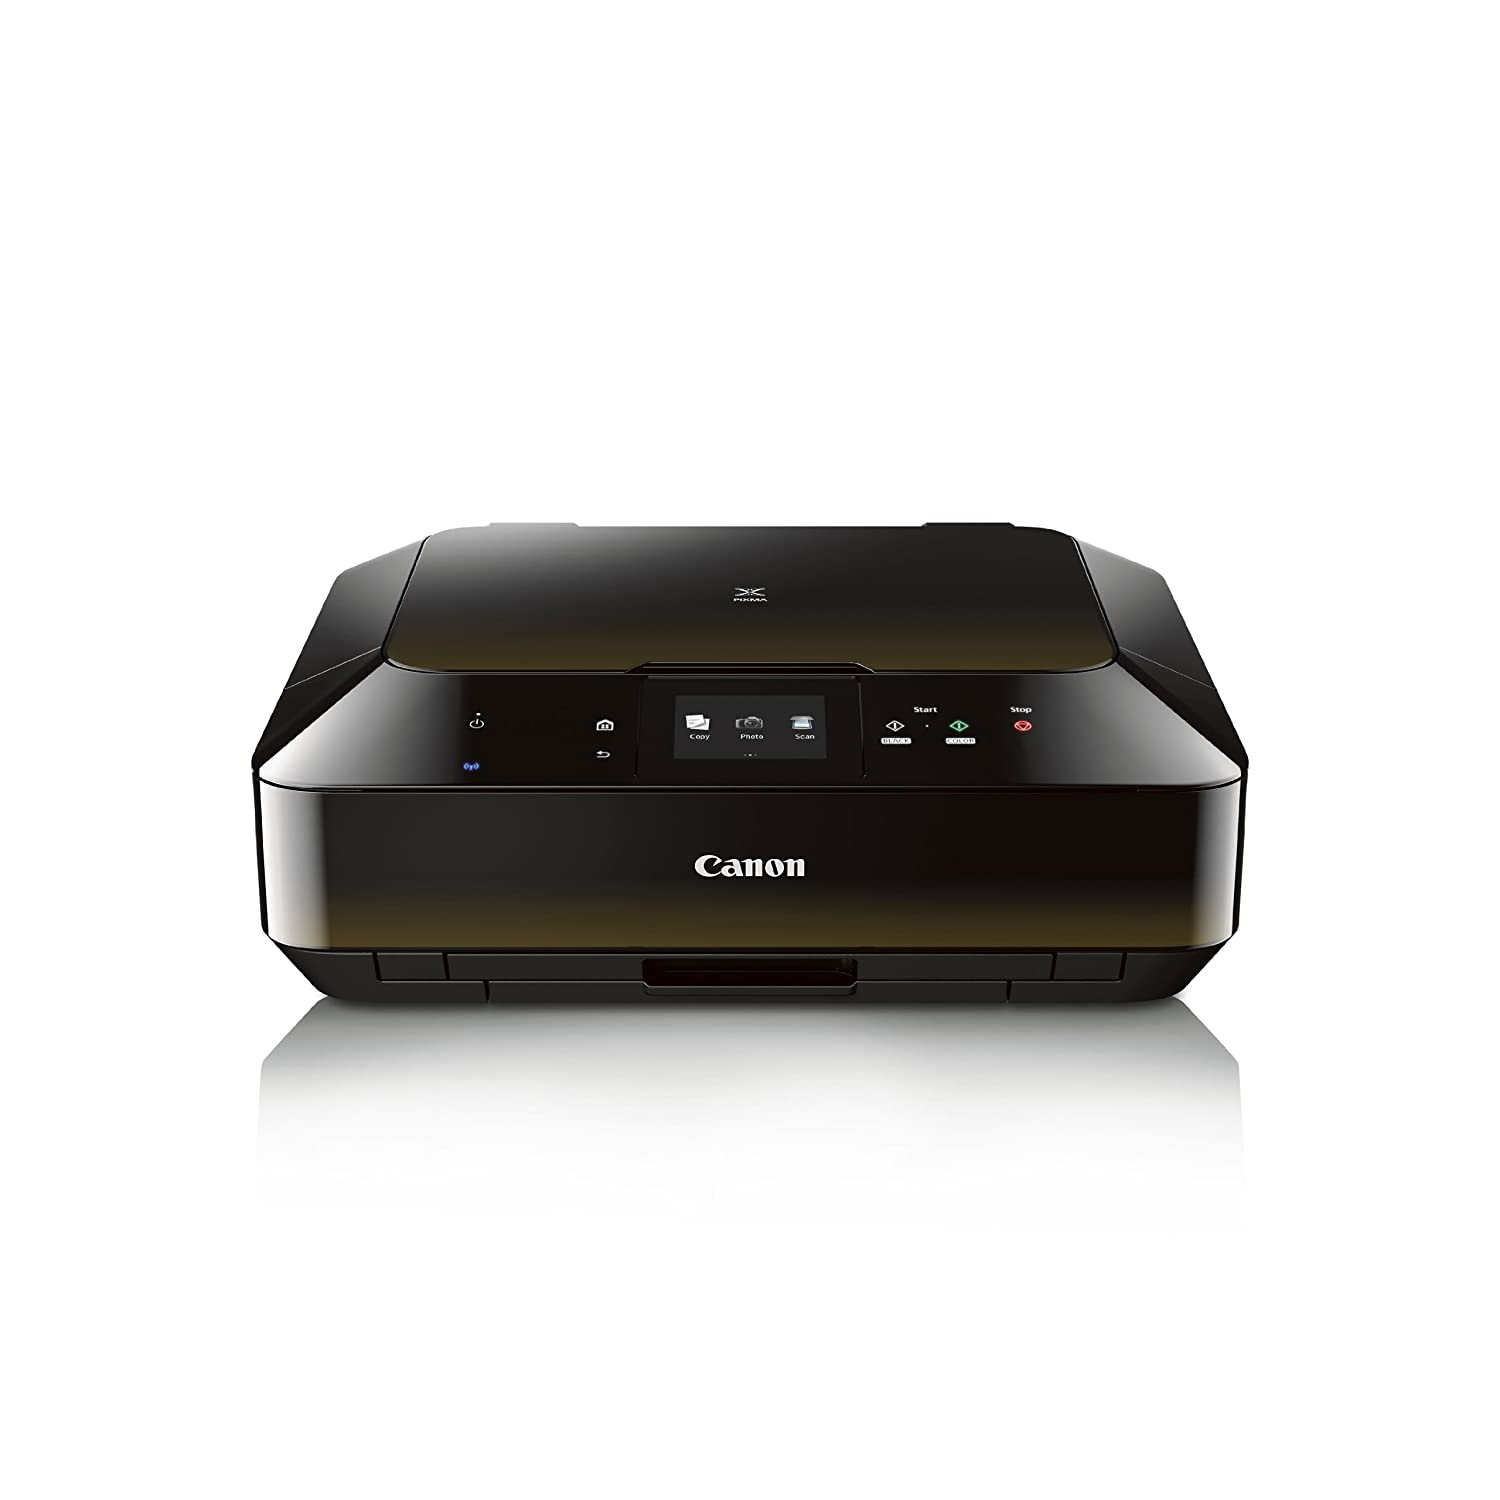 Canon PIXMA MG6320 Black Wireless Color Photo Printer with Scanner and Copier $79.99